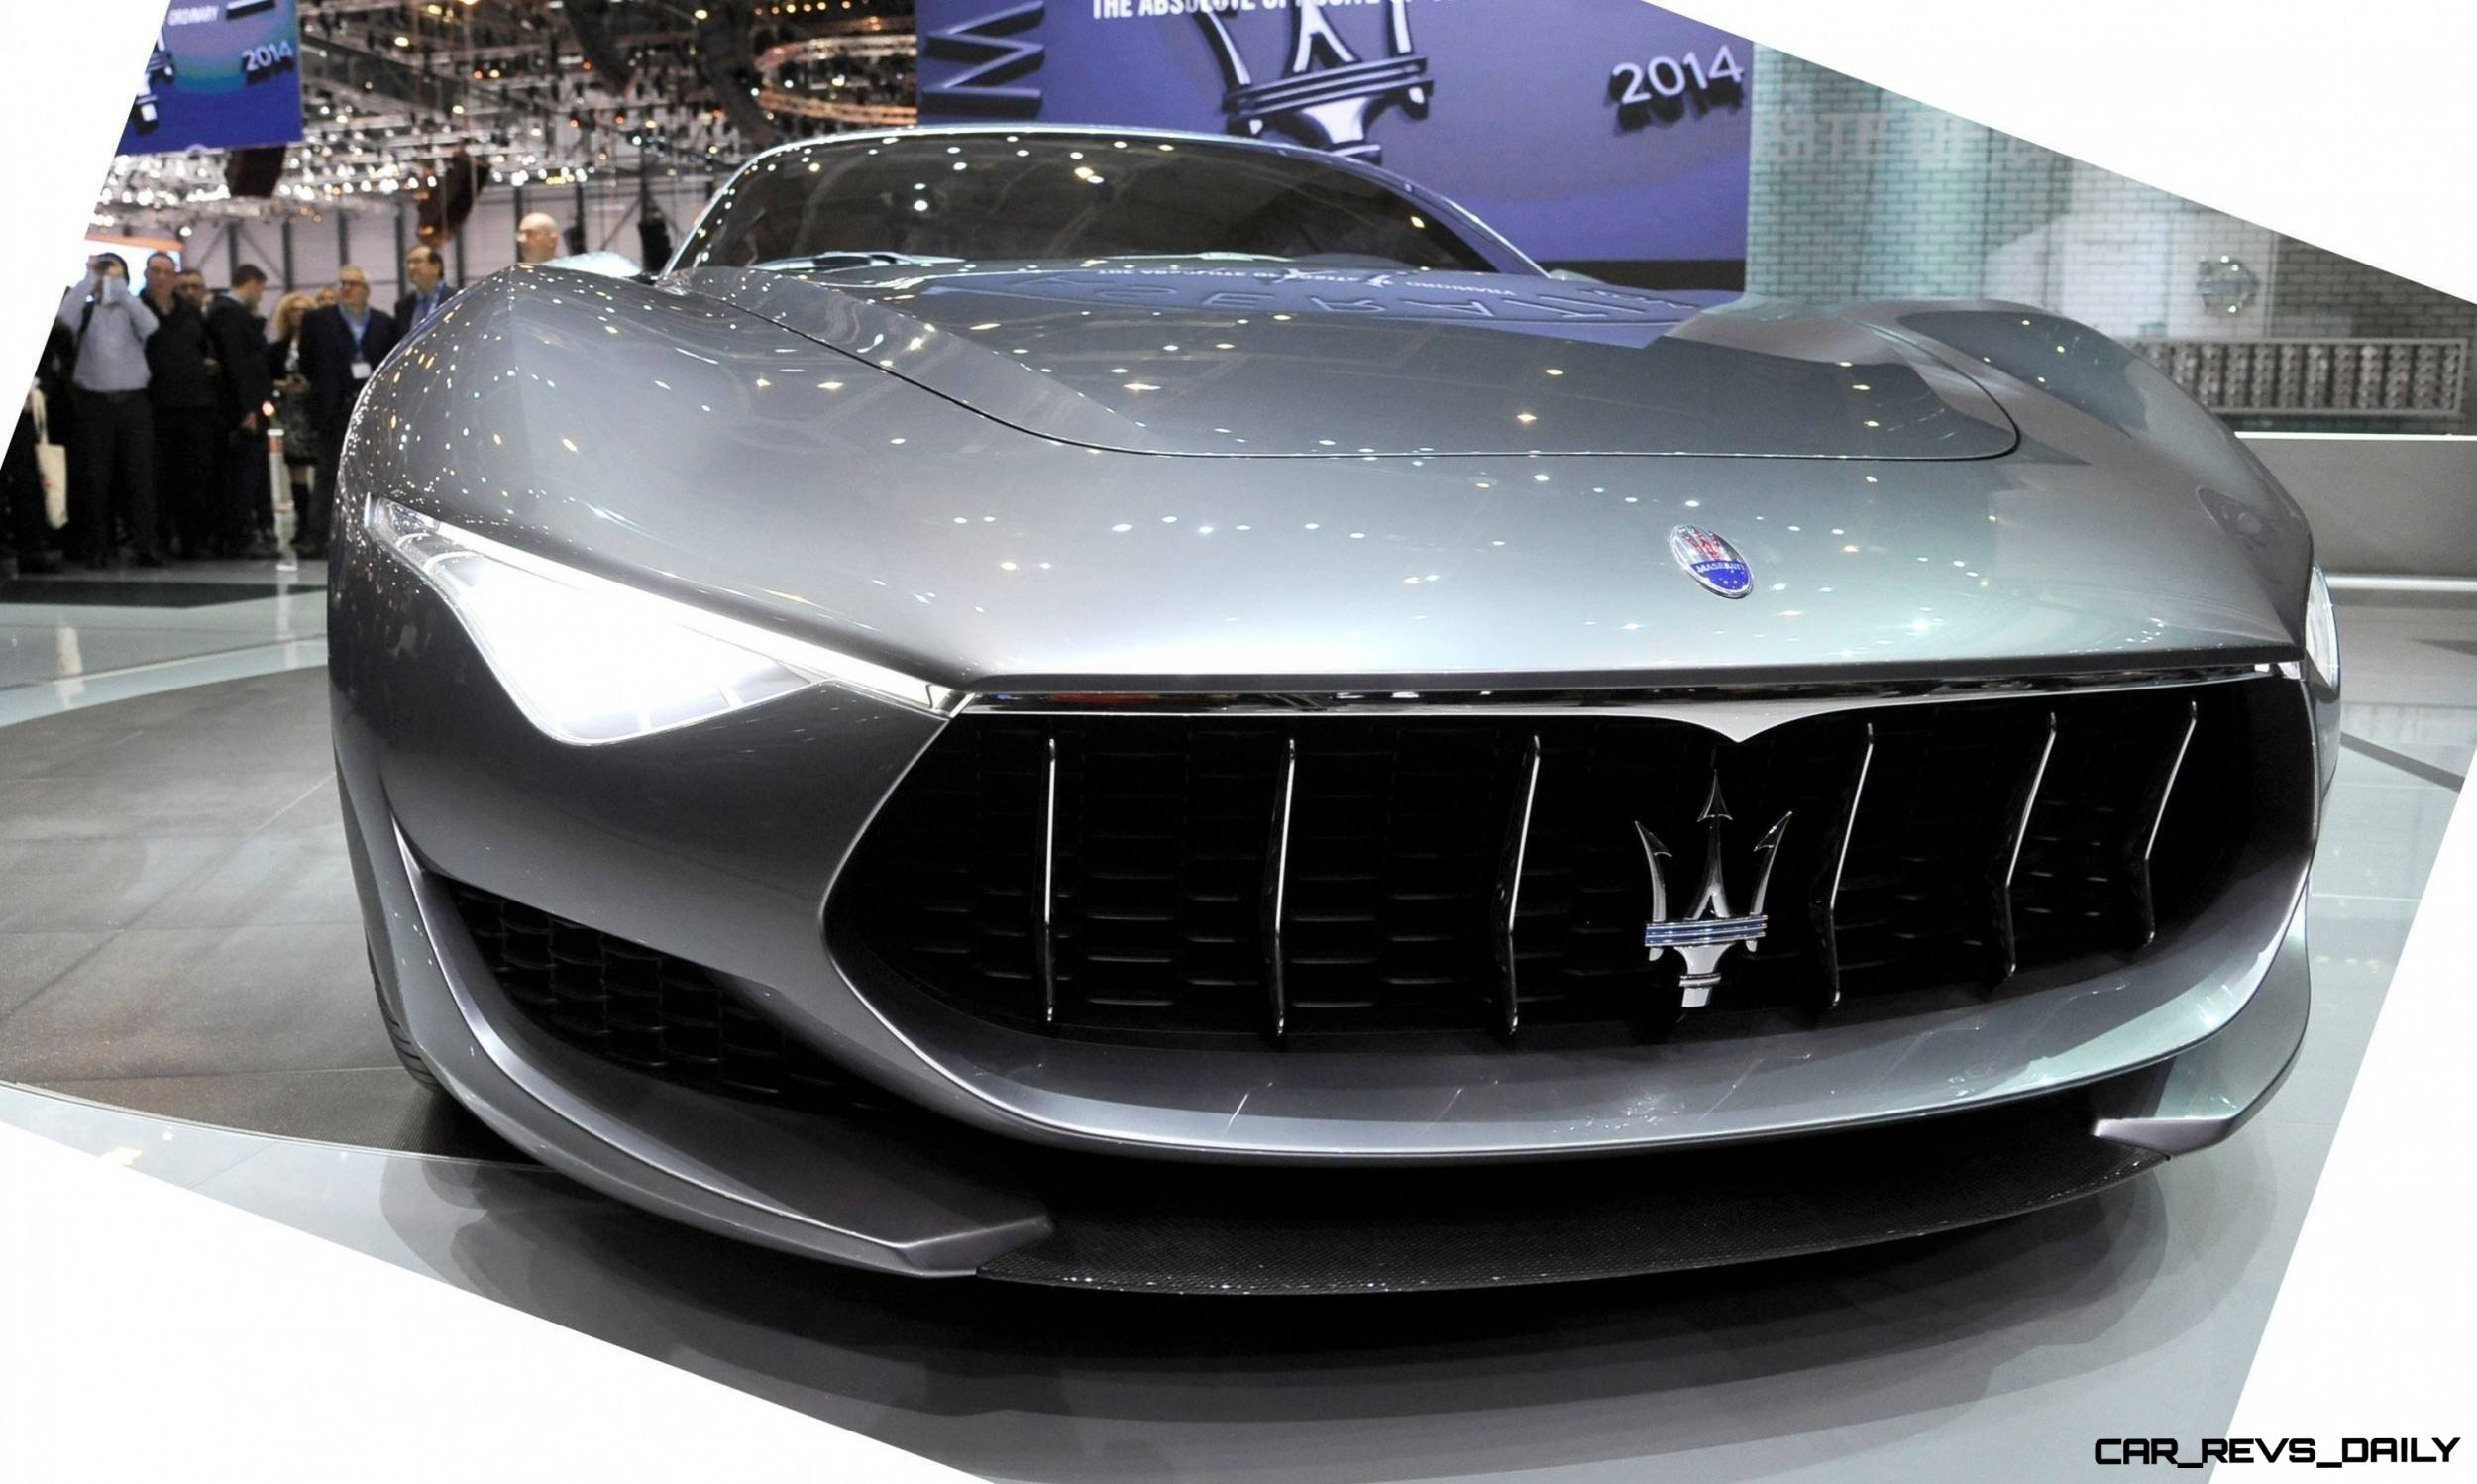 Alfieri Maserati Concept -- Analytical Assessment of the Trident's Flagship Prototype -- 52 Photos, Sketches, Reveal Images 9